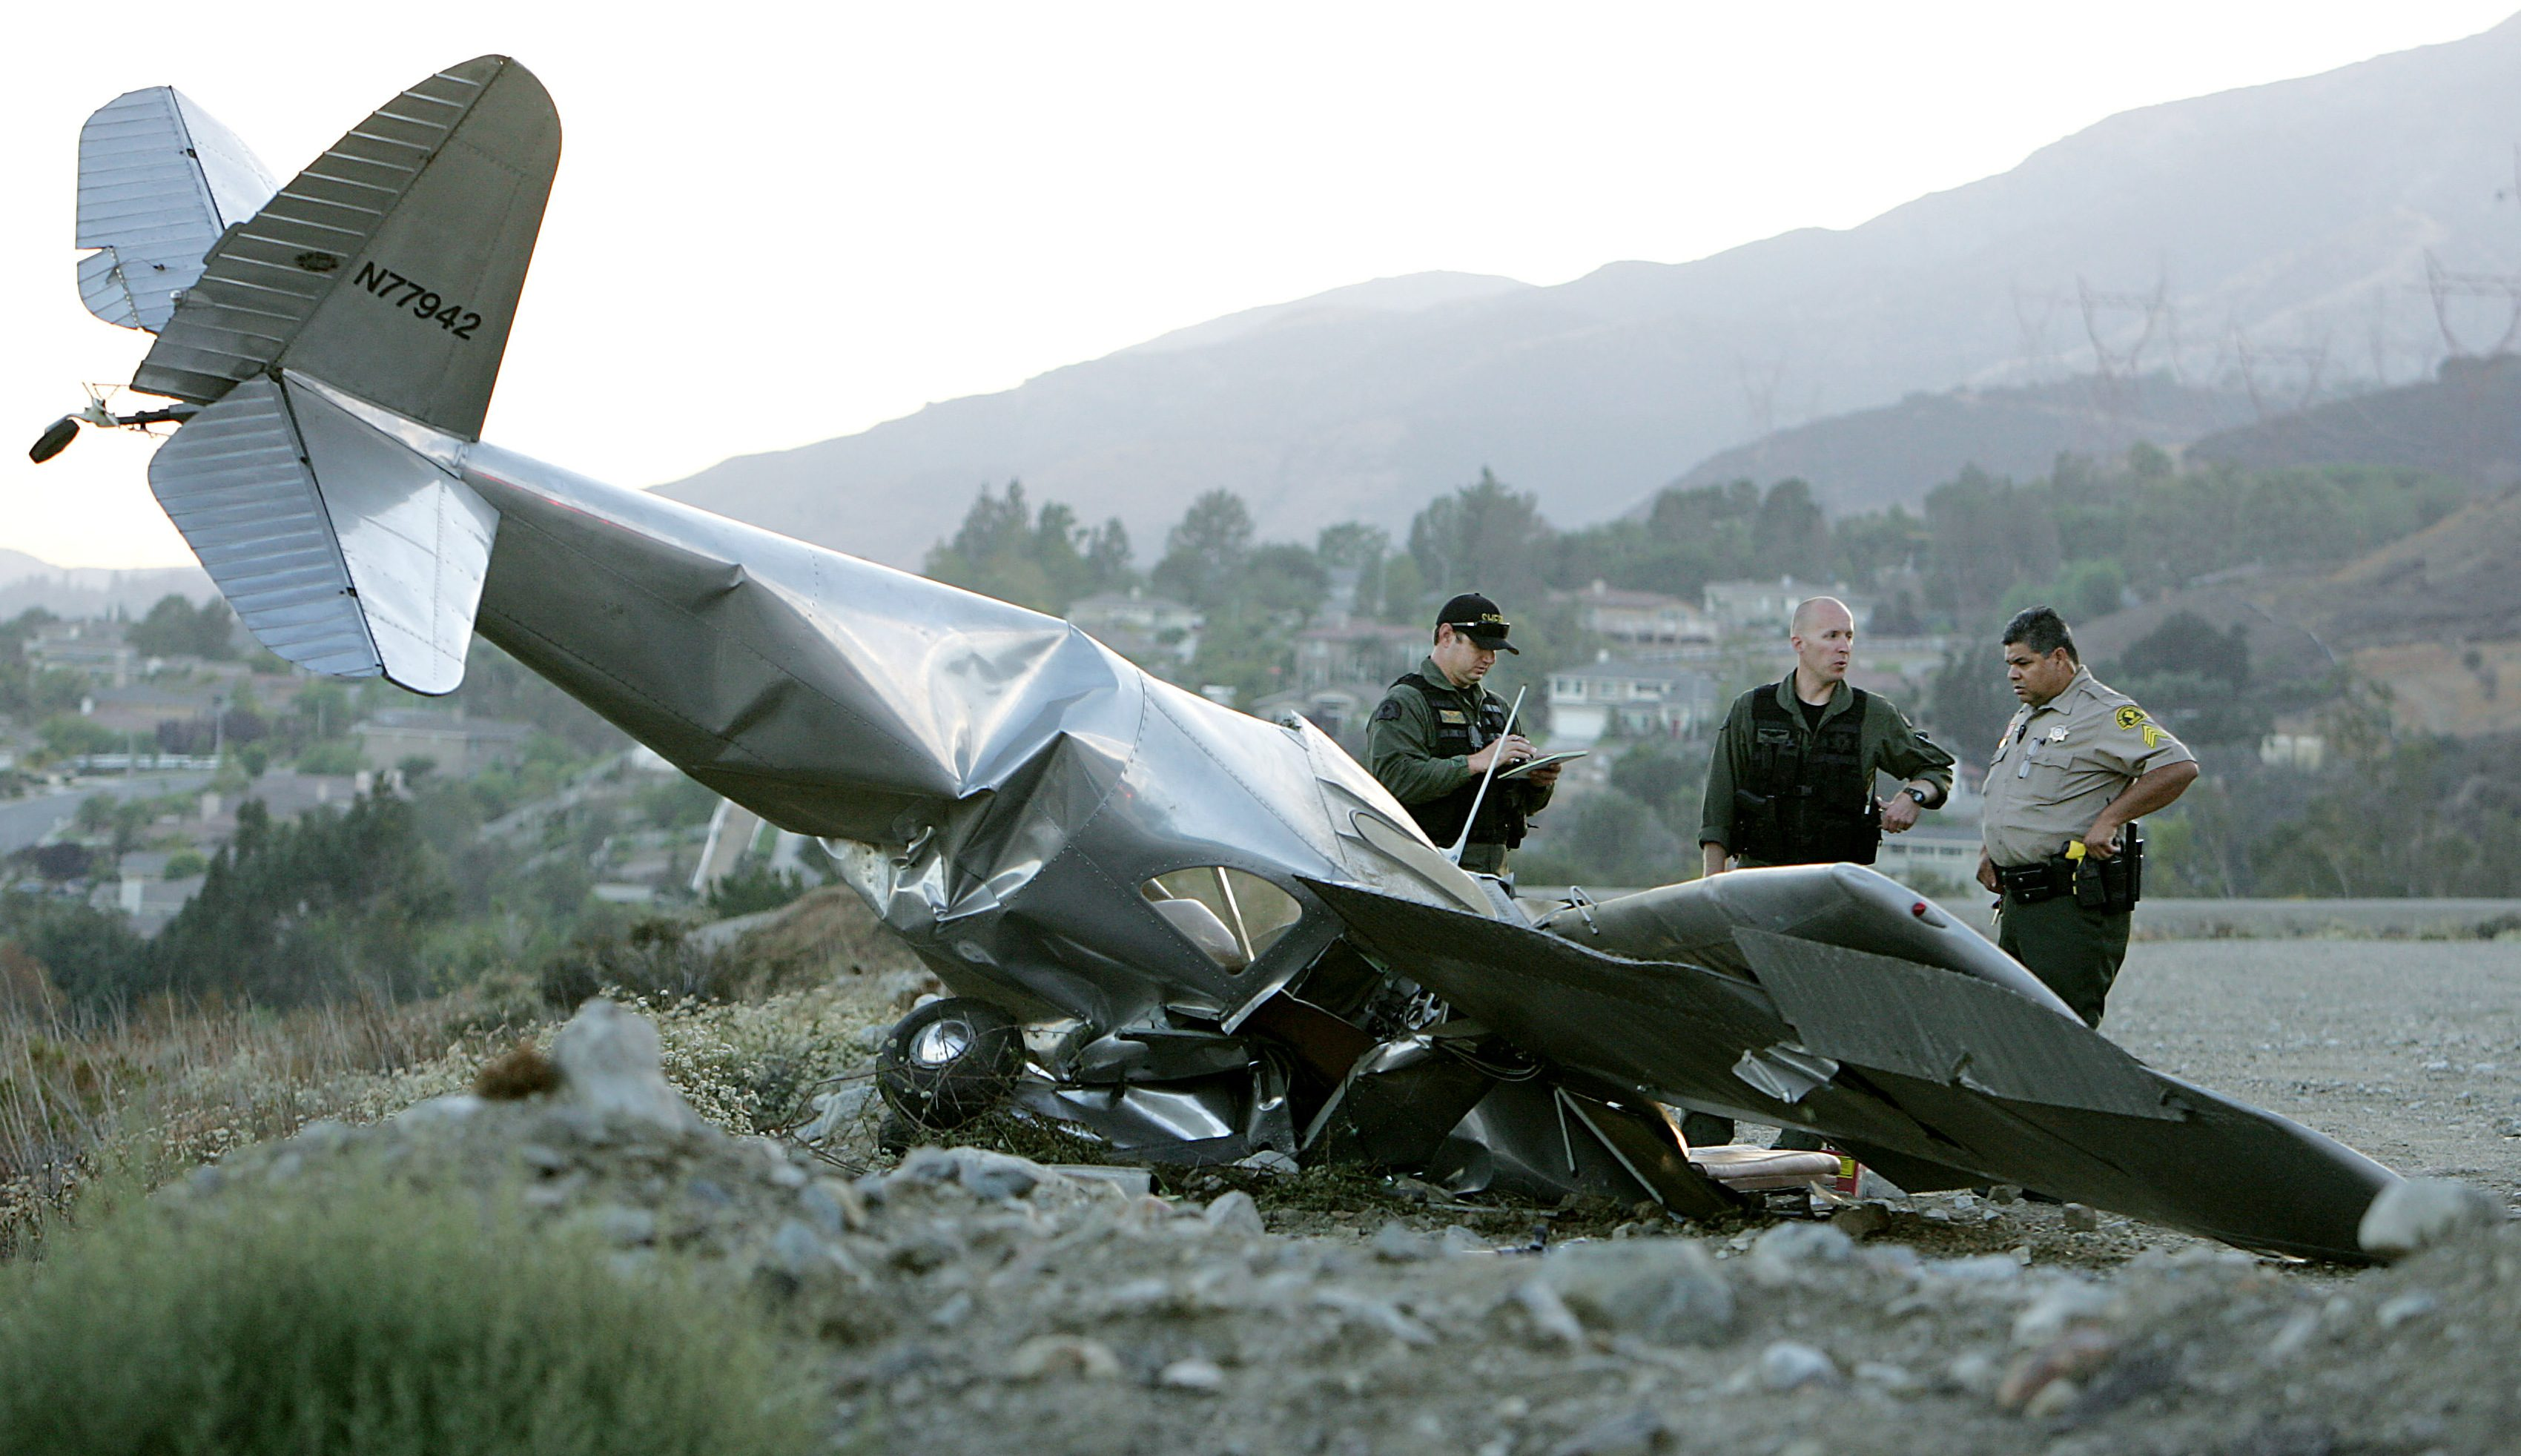 Mountain Lions and Plane Crashes – Within the Panorama